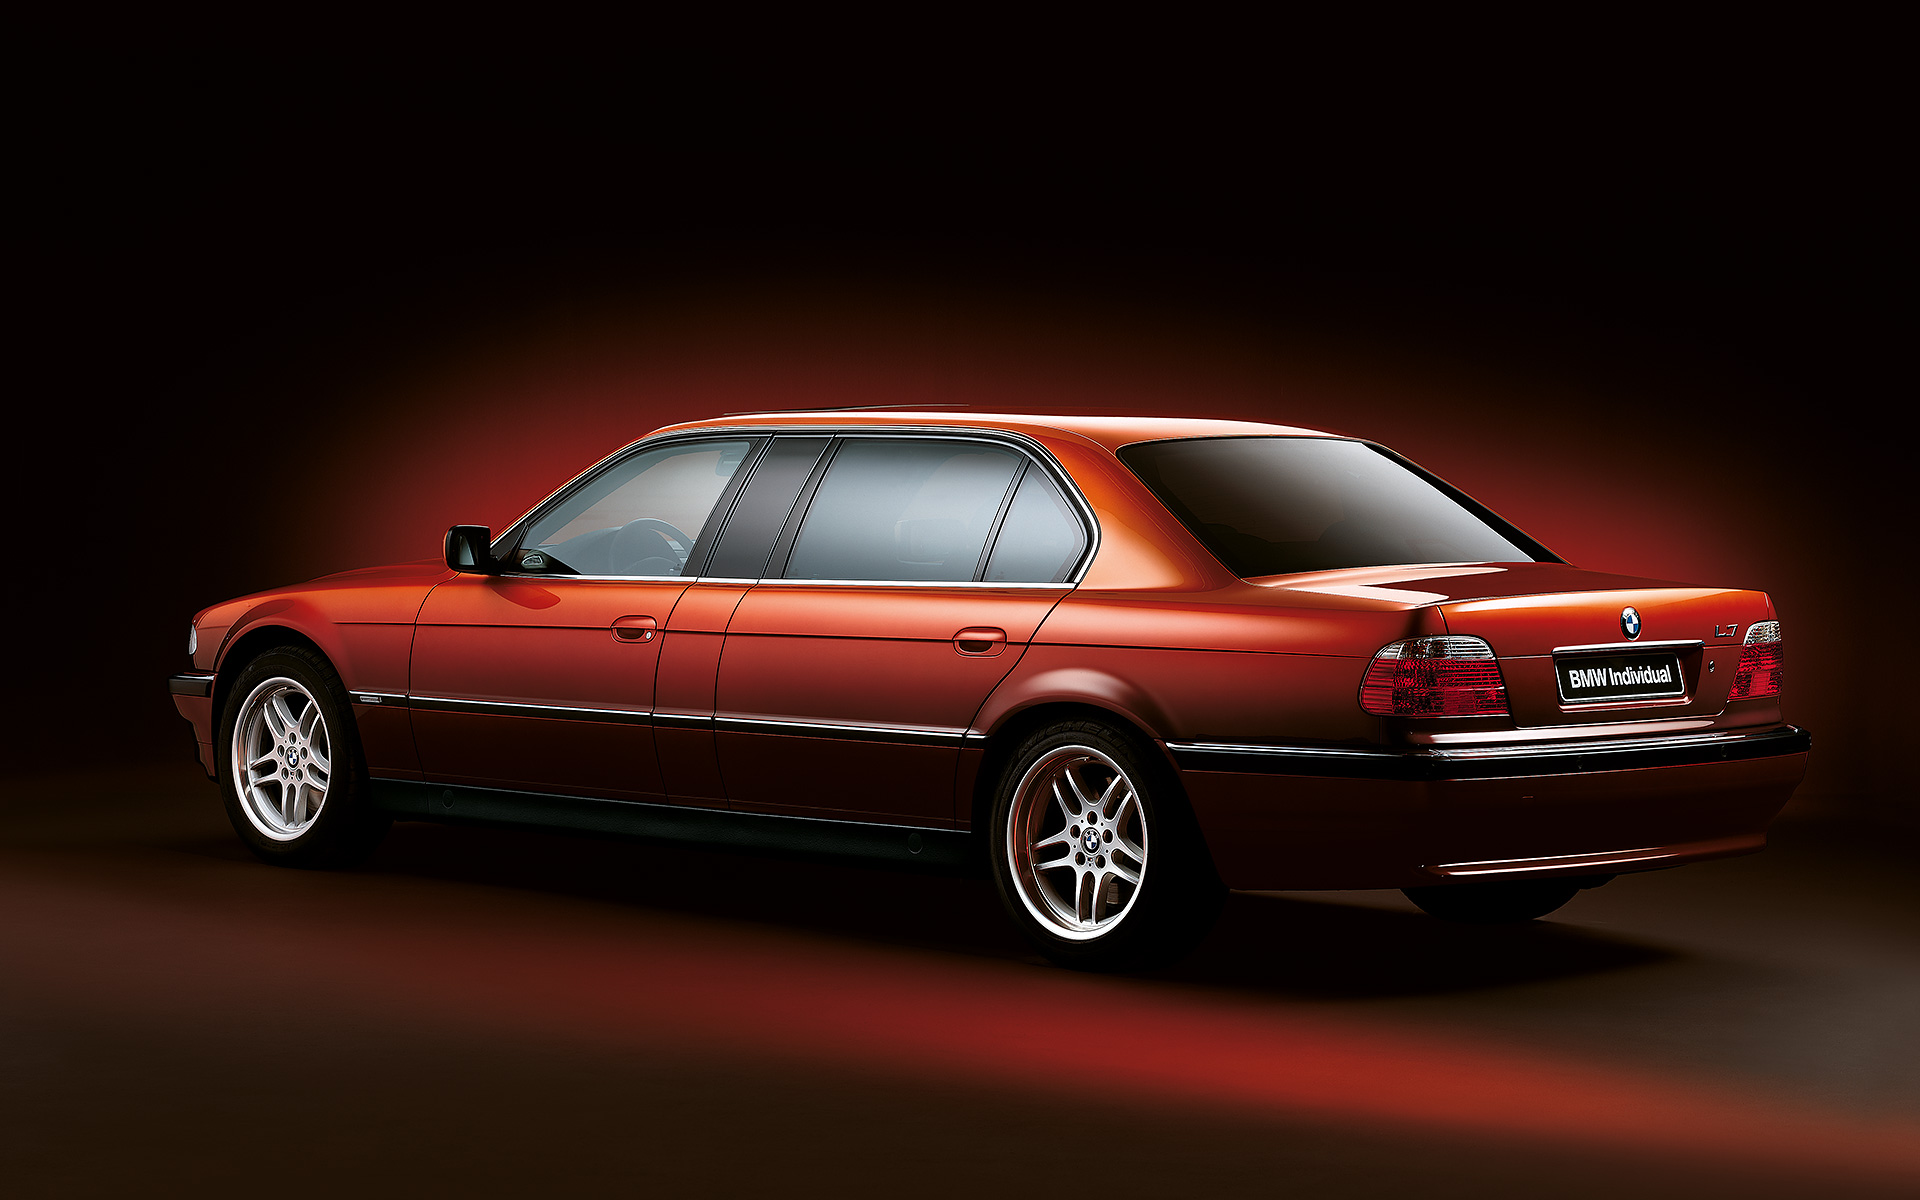 BMW 7 Series designed by Karl Lagerfeld